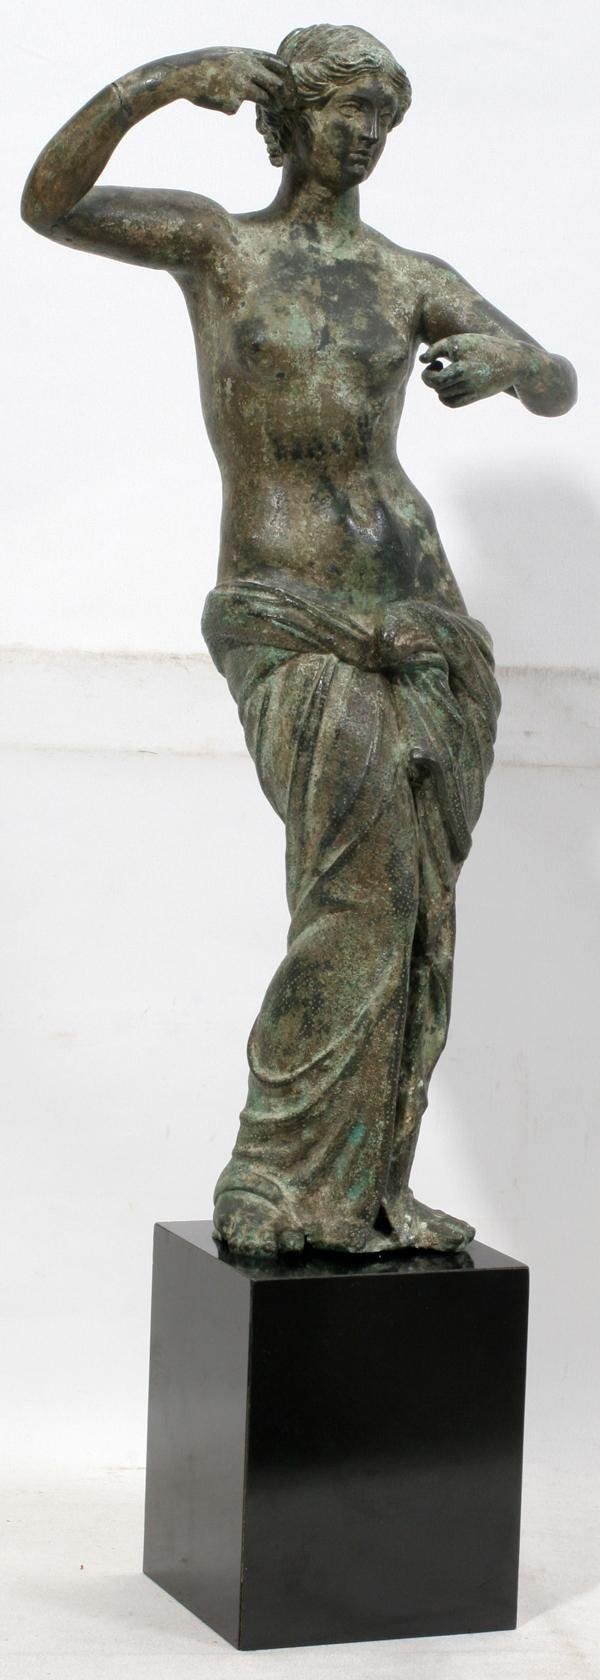 072372: PATINATED BRONZE FIGURE OF ROMAN GODDESS,